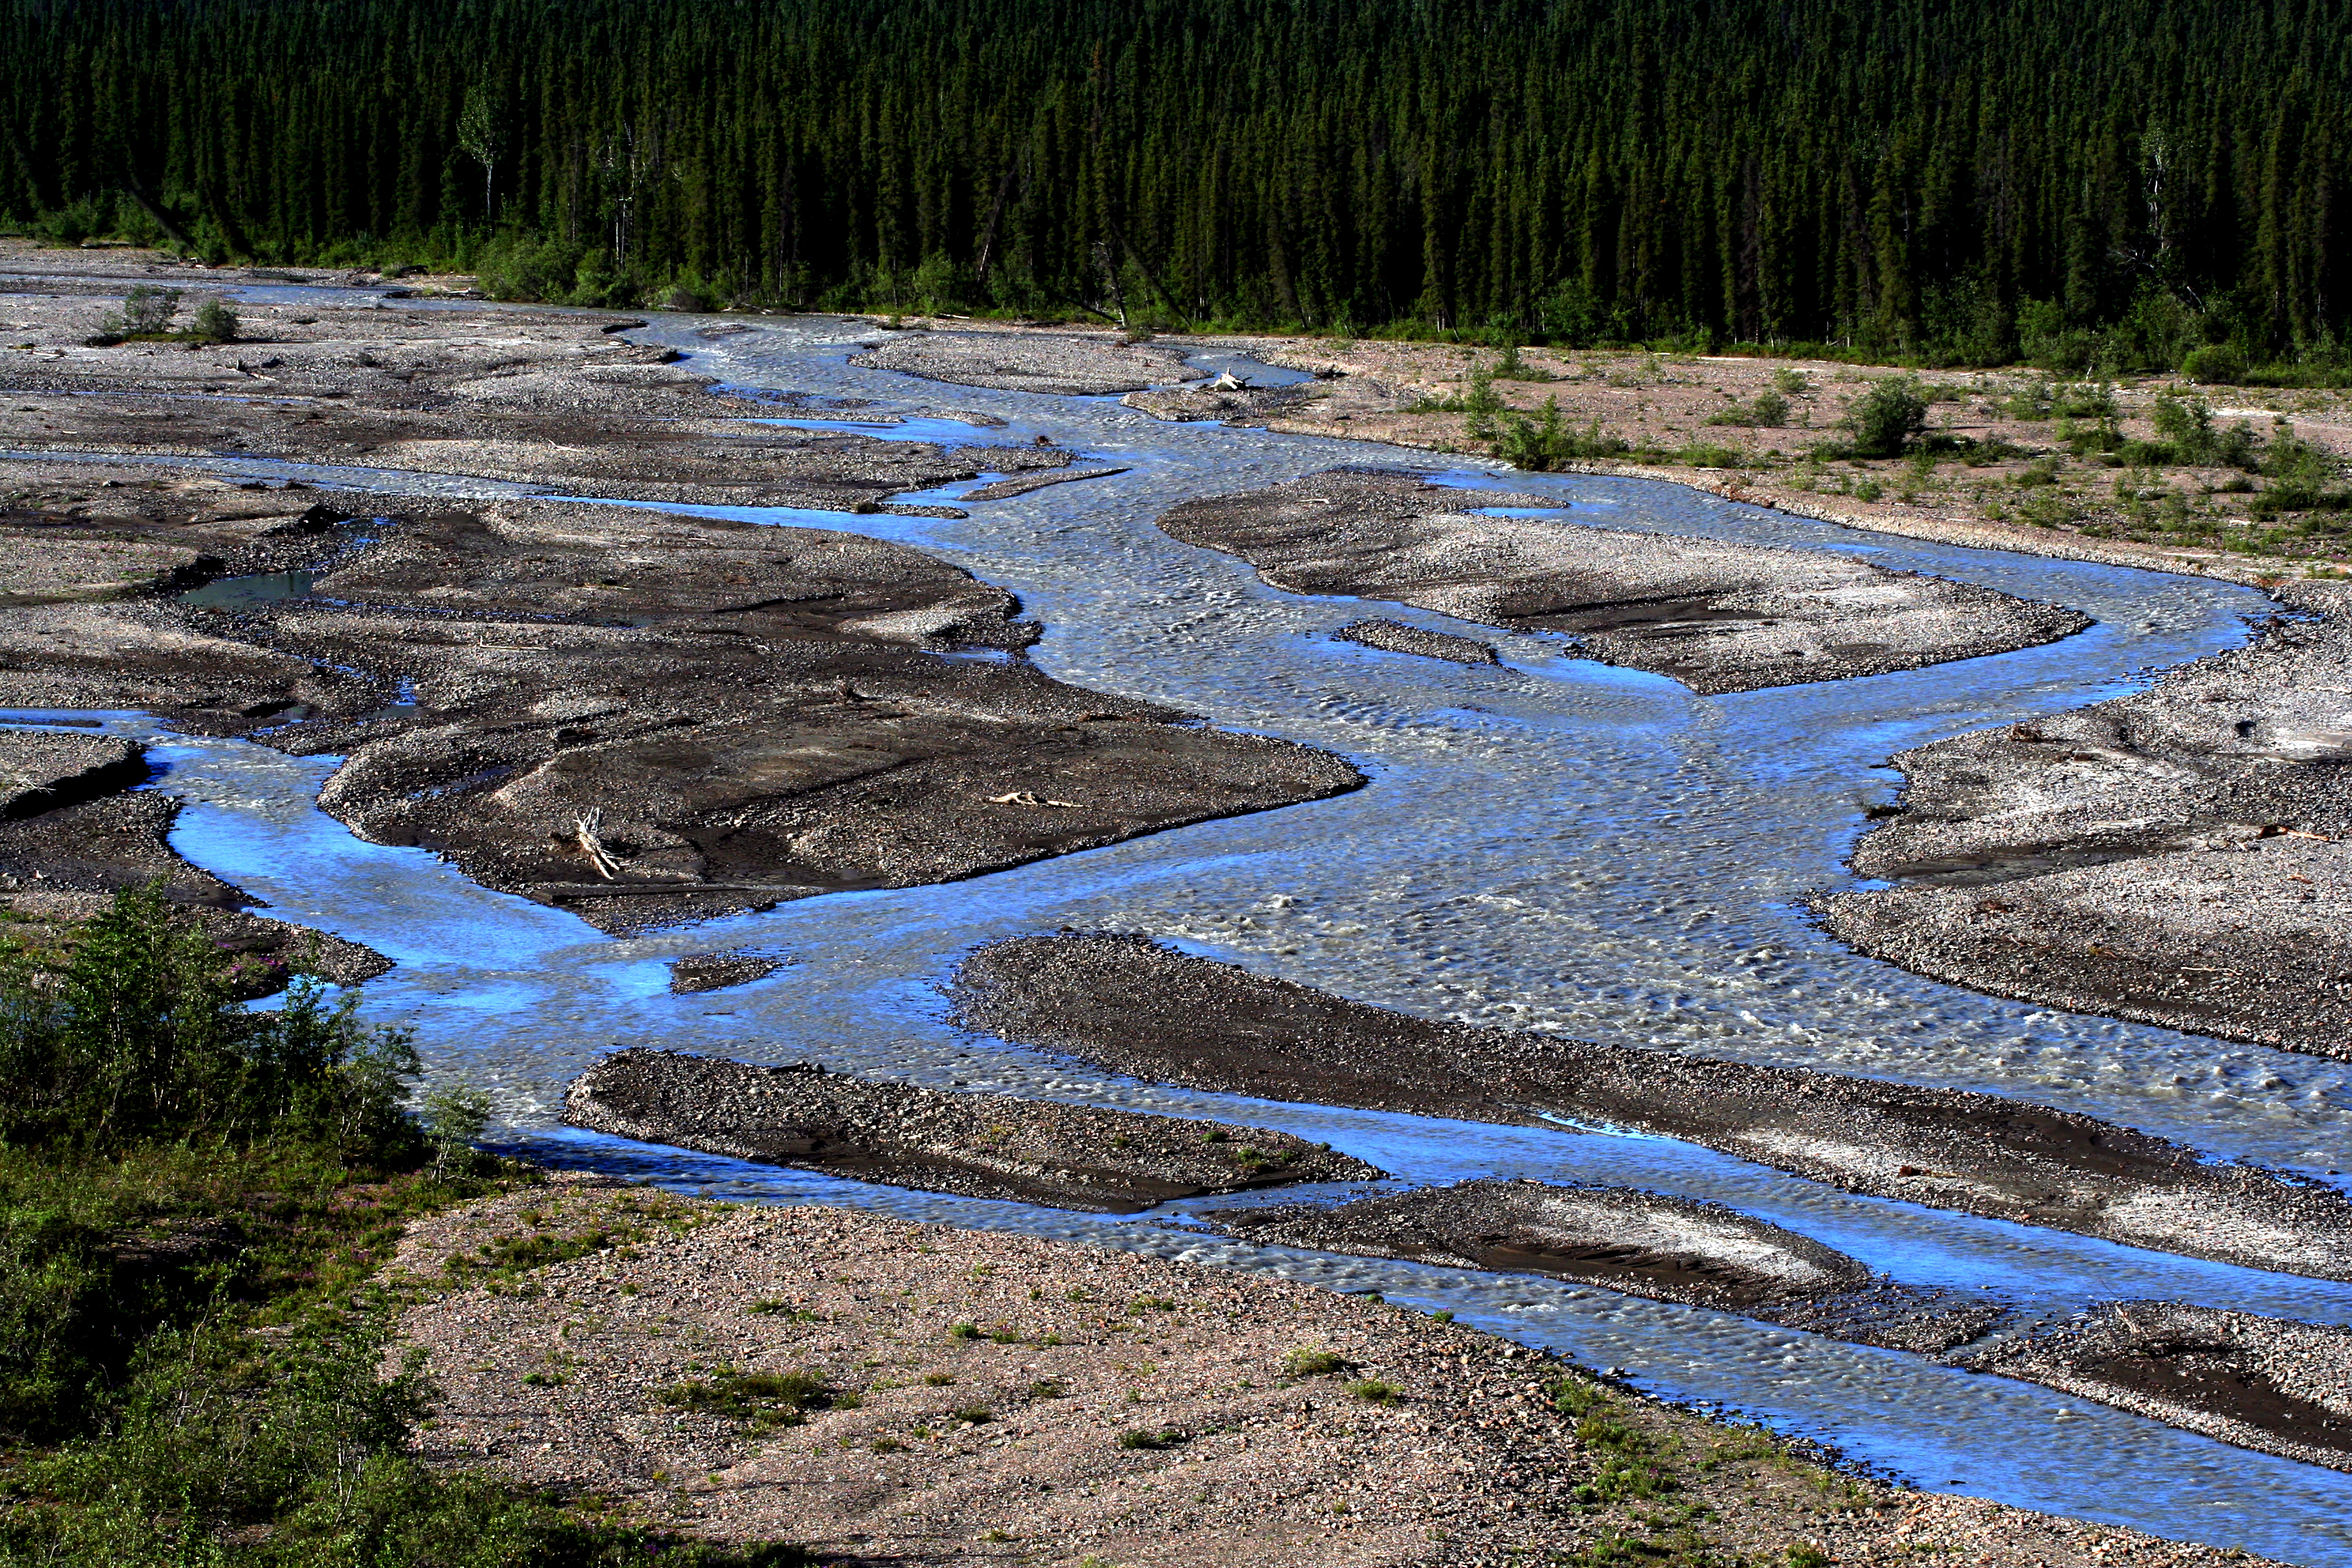 File:Braided river, Denali NP.jpg - Wikimedia Commons